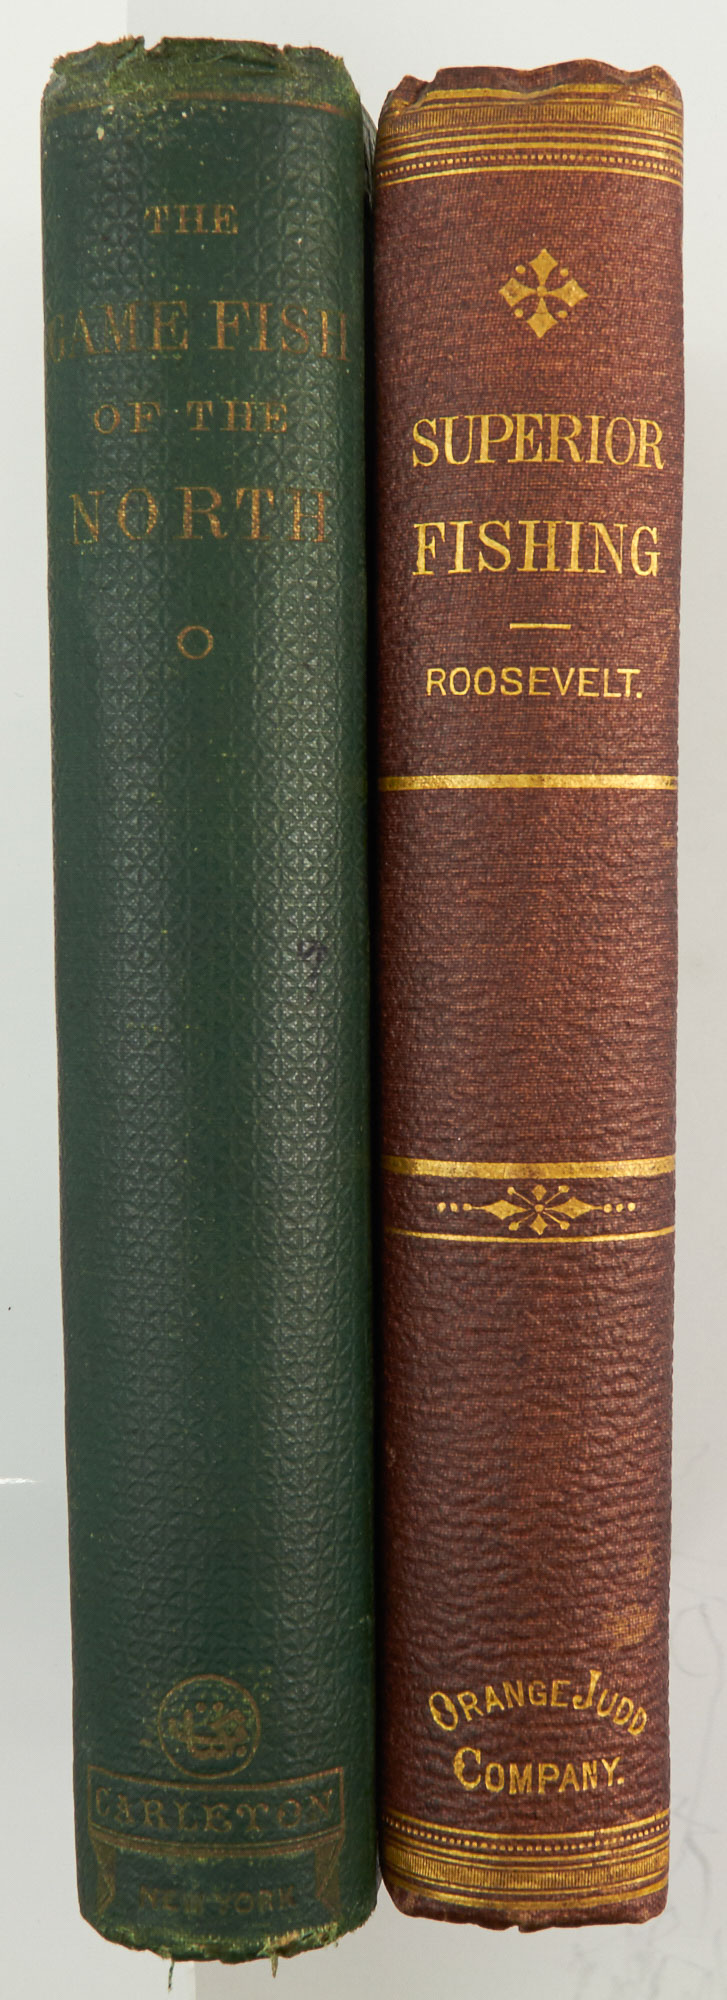 Lot image - [ANGLING - LITCHFIELD COPY]  ROOSEVELT, ROBERT BARNWELL (A Barnwell). Game Fish of the Northern States of America, and British Provinces.